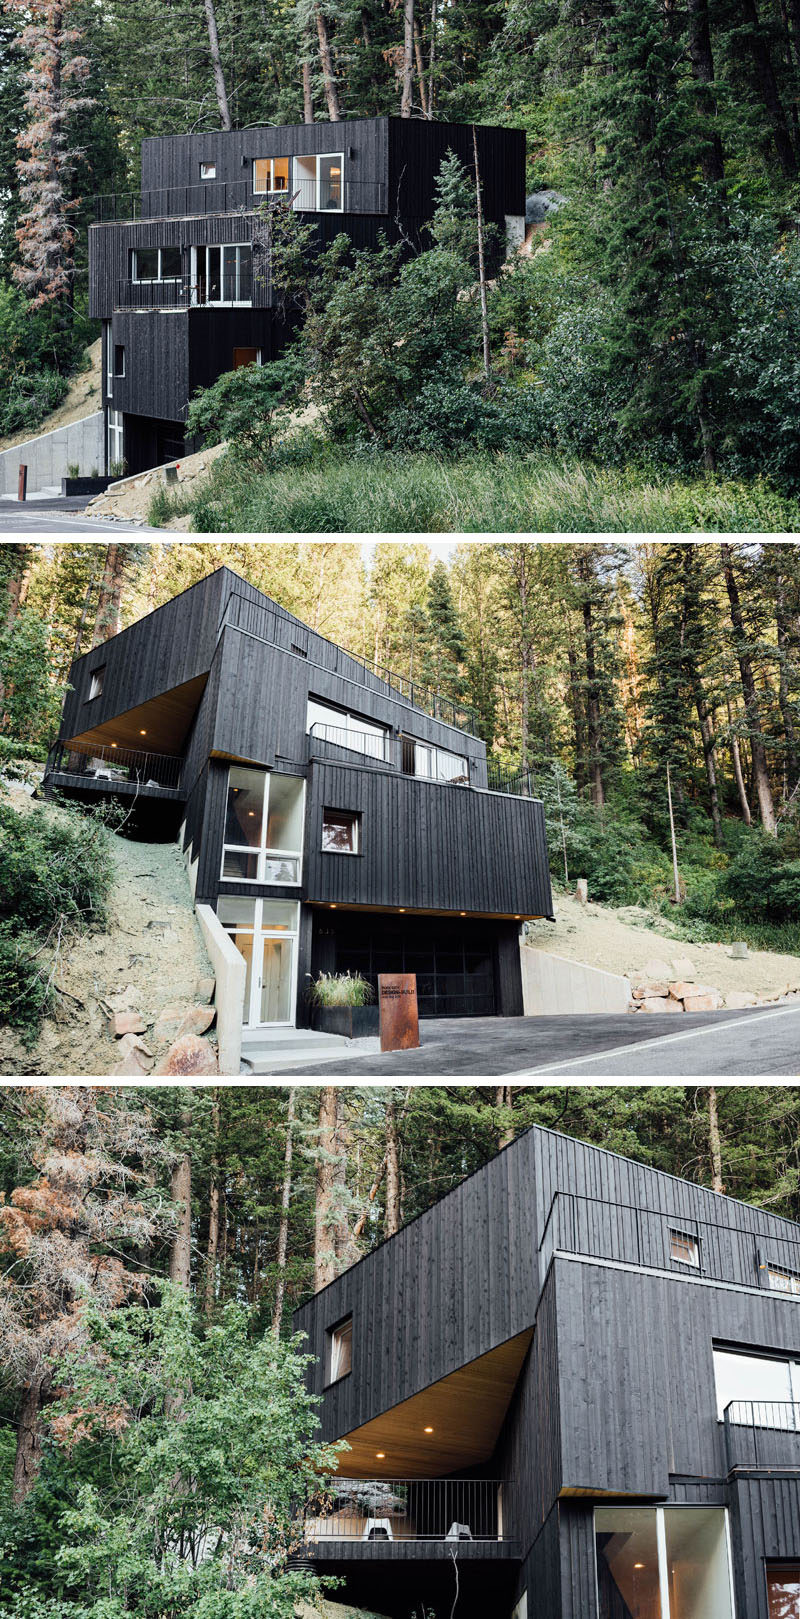 Chris Price of Park City Design Build, has recently completed the TreeHaus, a modern house in Summit Park, Utah, that sits on a steep and wooded site, and is clad in blackened cedar siding. #ModernHouse #BlackSiding #BlackHouse #WoodSiding #Architecture